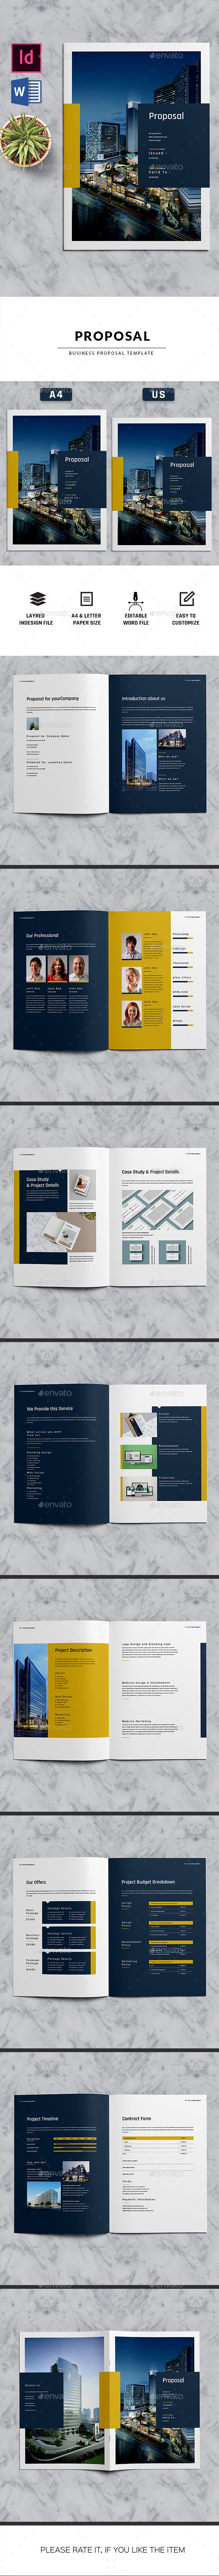 Proposal Brochure Template InDesign INDD, MS Word - 16 Pages A4 & Letter Size